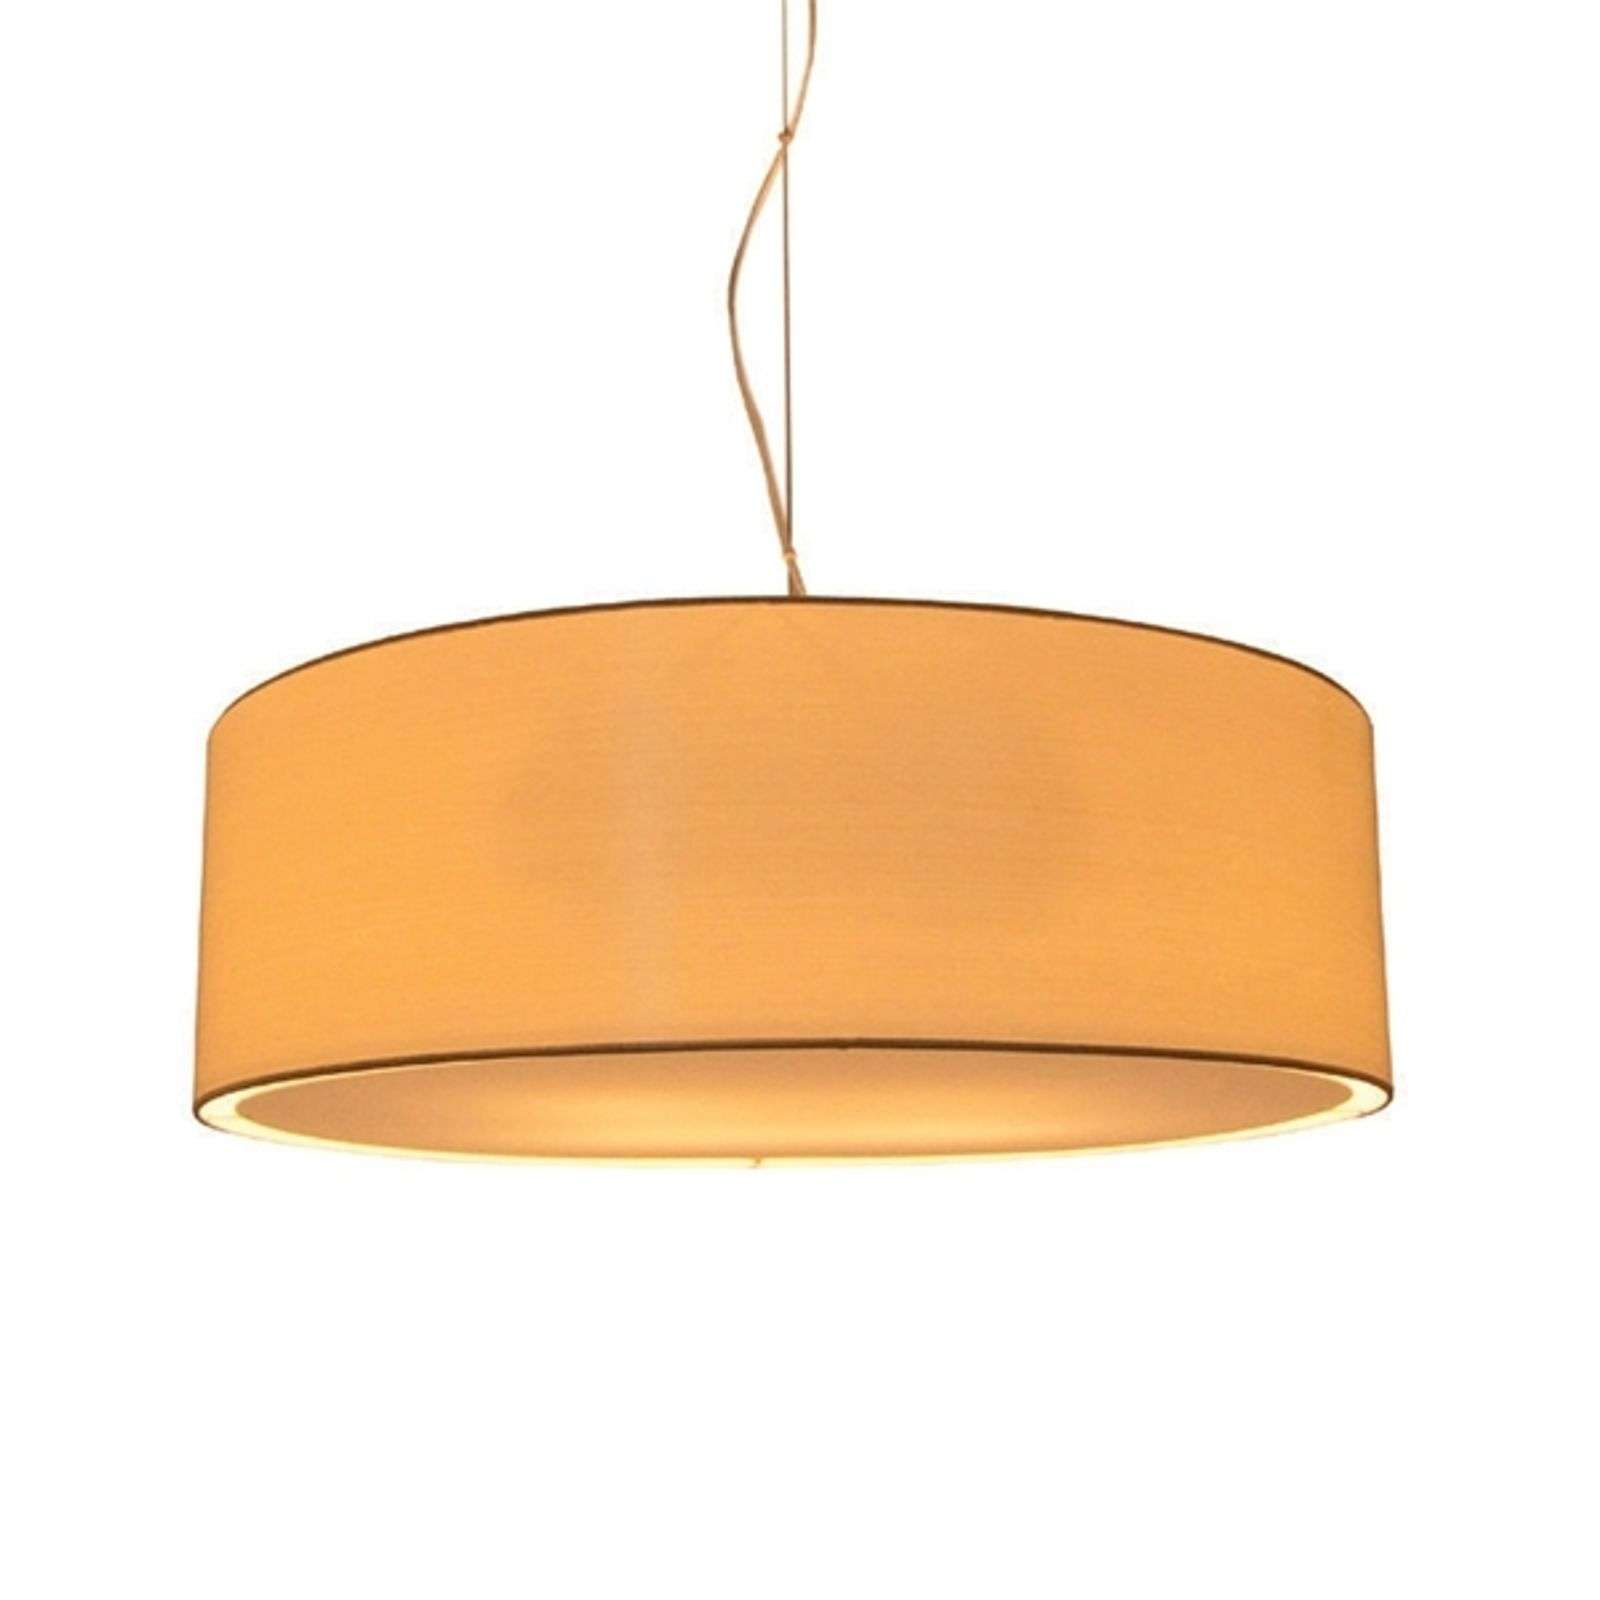 Suspension LIVING ELEGANT crème diamètre 60 cm